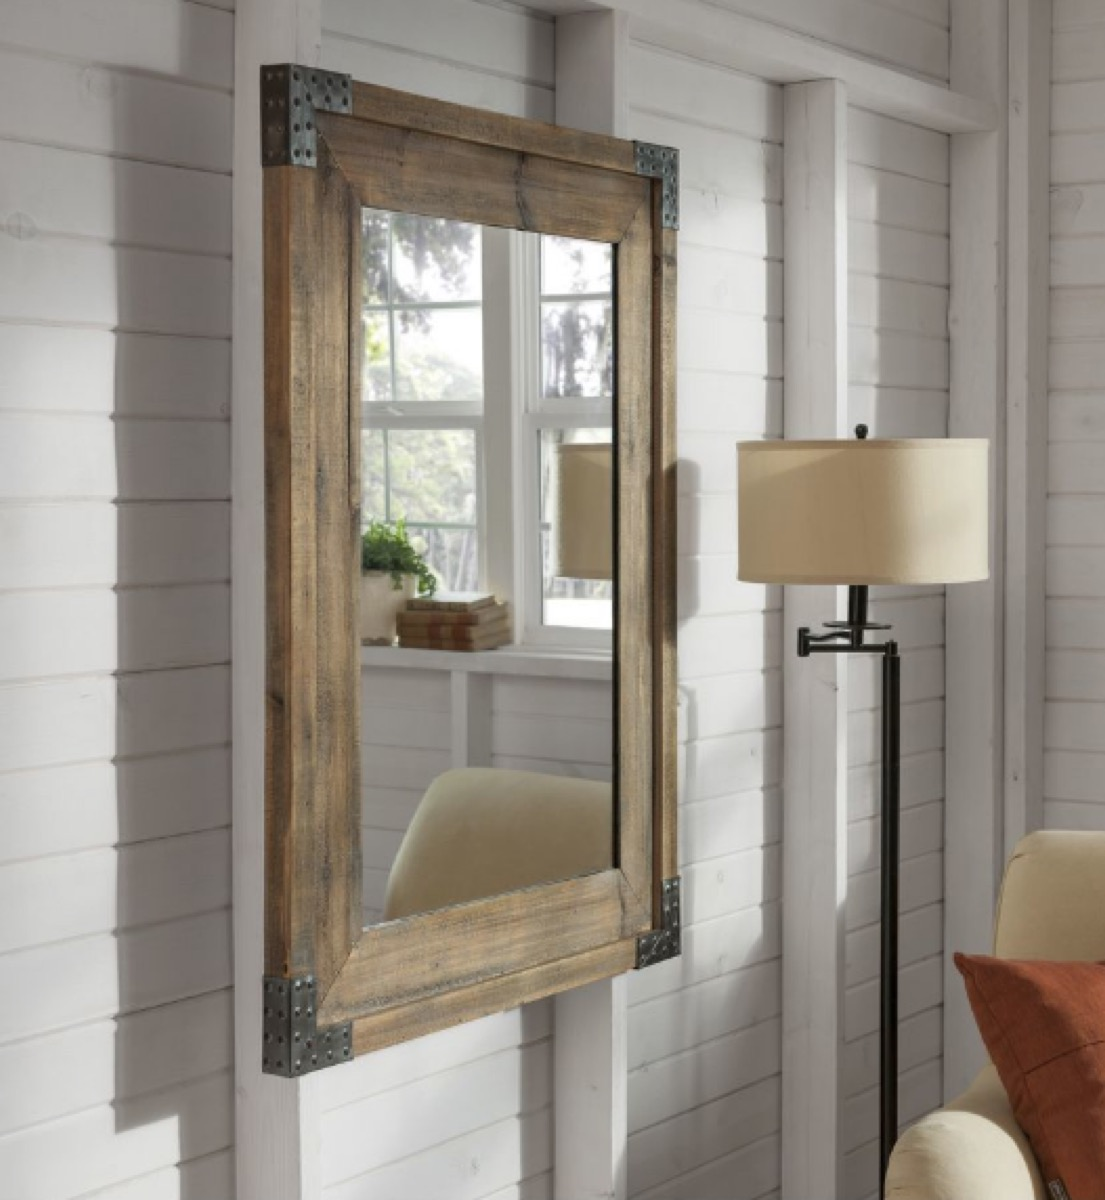 roth + allen rustic mirror on wall buy after holidays